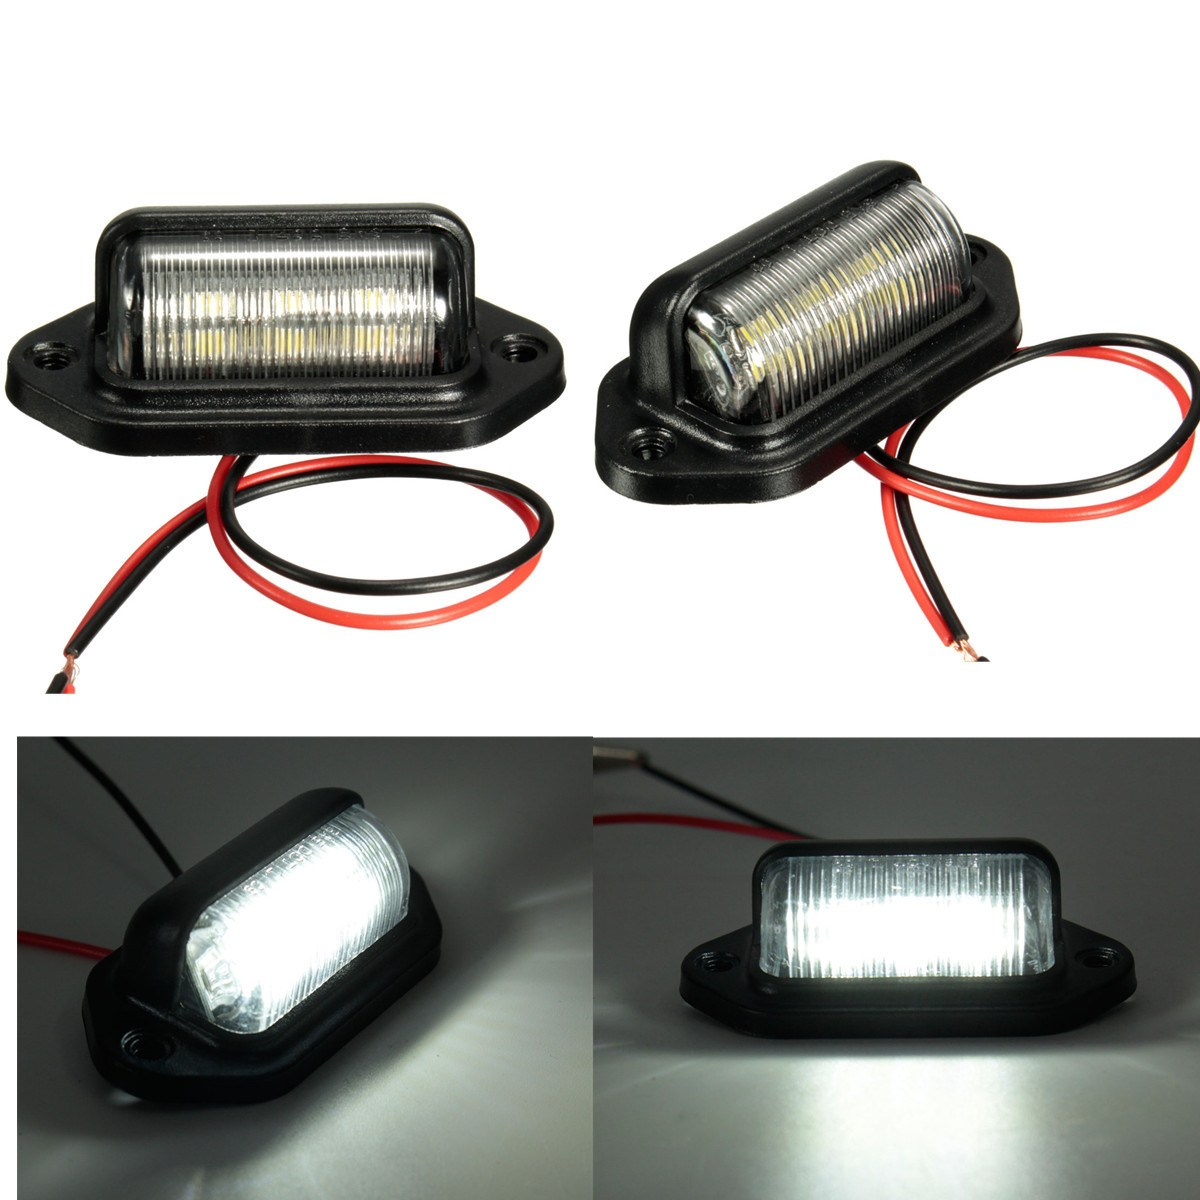 Number Plate Light License Plate Light Lamp Bulbs For Boats Motorcycle Automotive Aircraft RV Truck Trailer 12V 6LEDs(China)